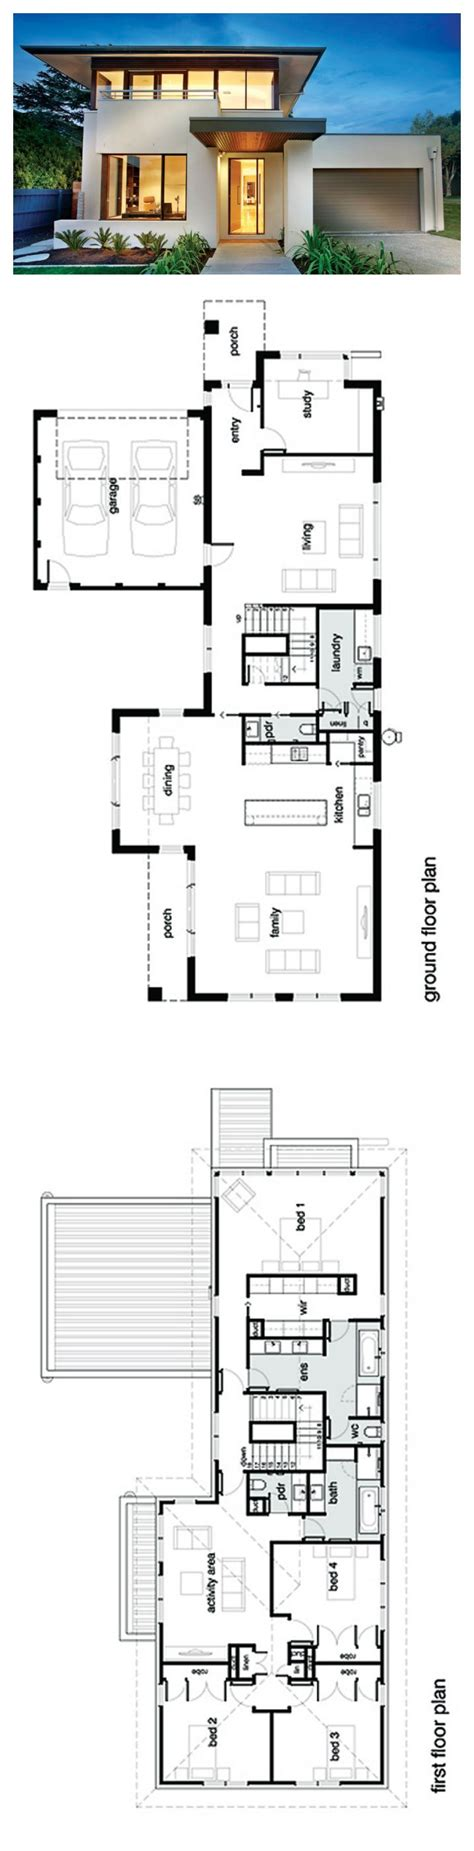 contemporary house designs and floor plans best 25 modern house plans ideas on modern floor plans modern house floor plans